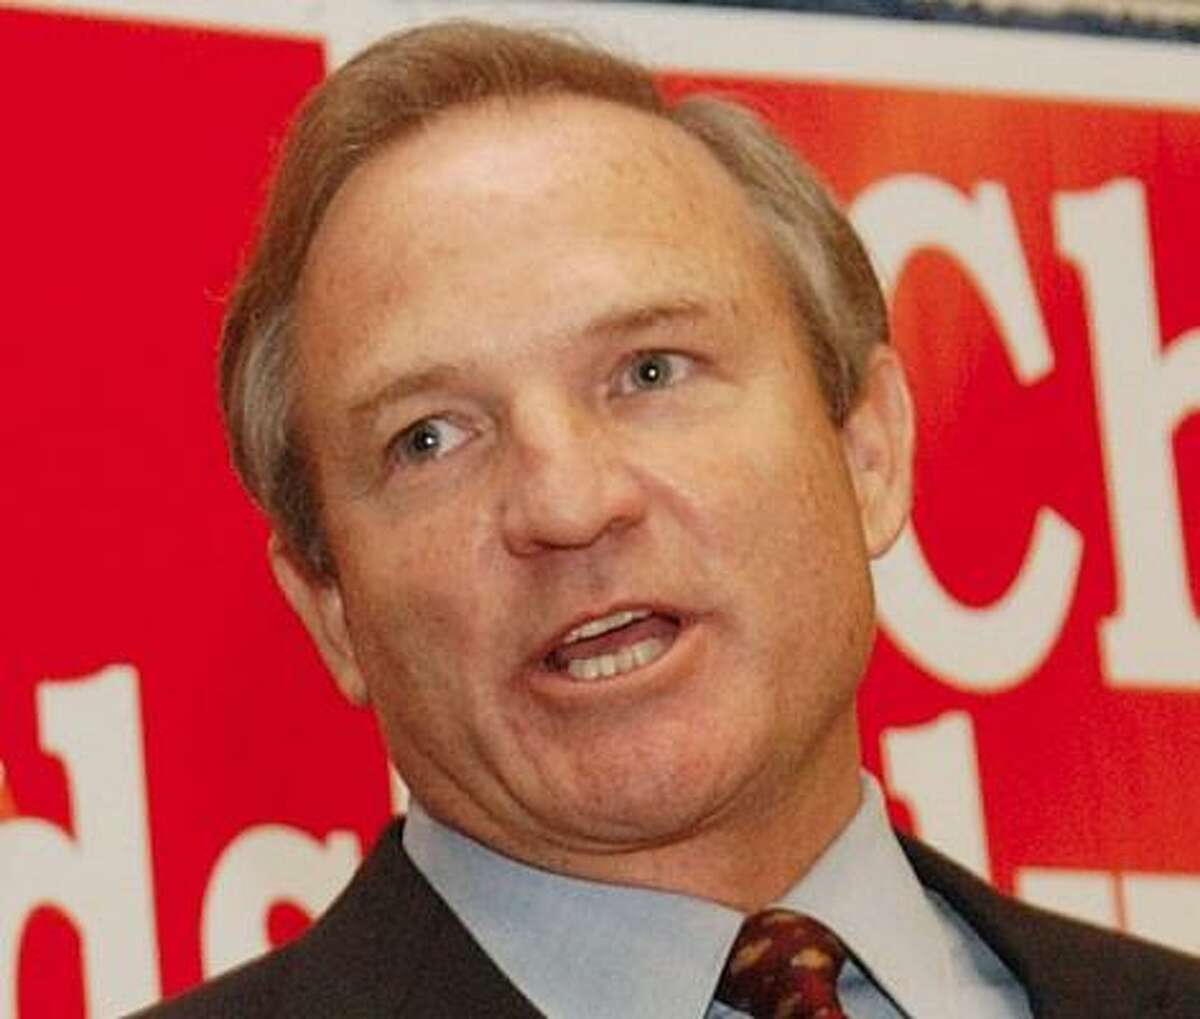 According to new rankings, Rep. Chet Edwards, at his victory party in November 2006, has the most political clout in the Texas delegation.